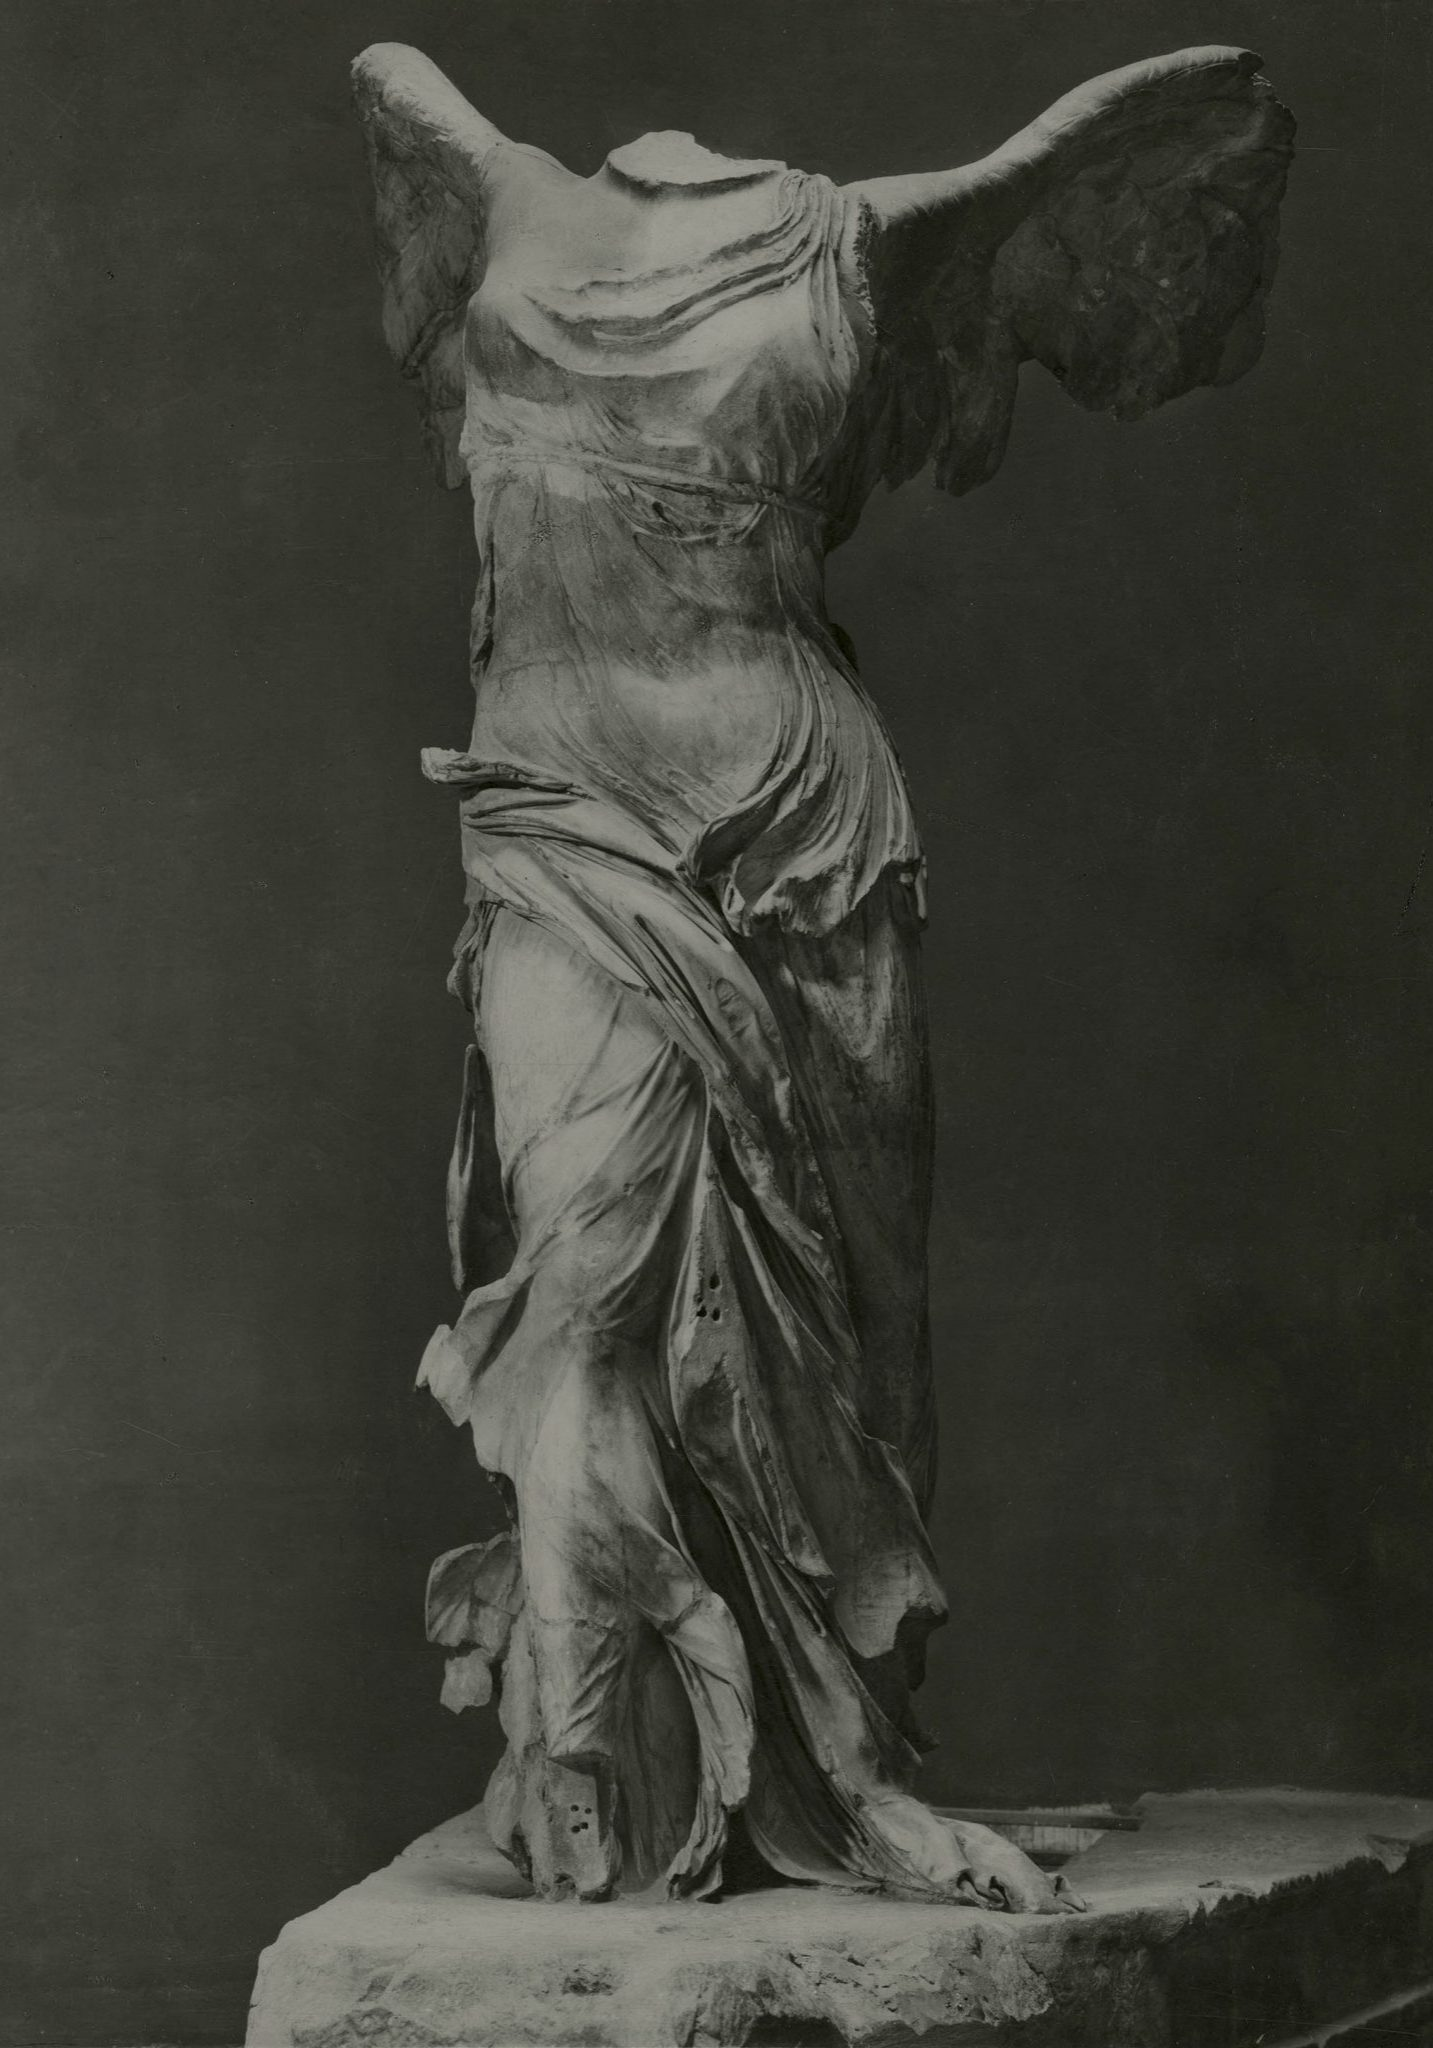 <p><i>The Nike of Samothrace.</i></p><p>c. 220 BCE. Marble.</p><p>Musée du Louvre, Paris.</p>